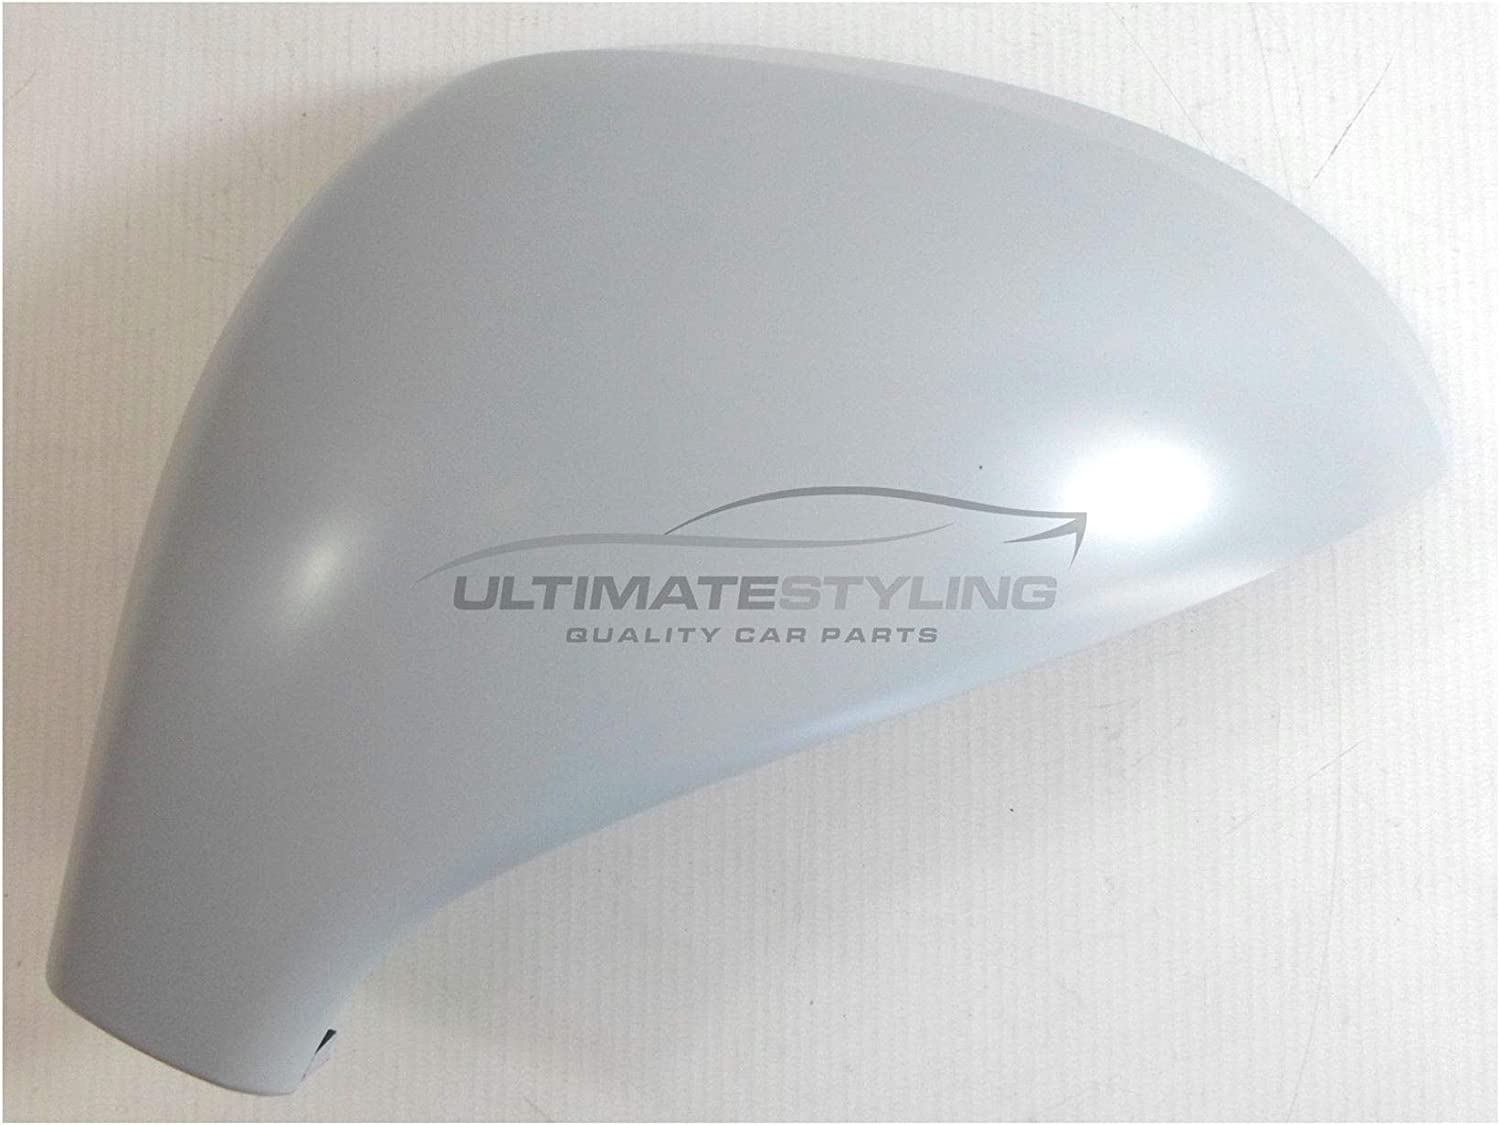 Textured For Passenger Side LH Ultimate Styling Aftermarket Replacement Wing Mirror Cover Cap Colour Of Cover Black Left Hand Side